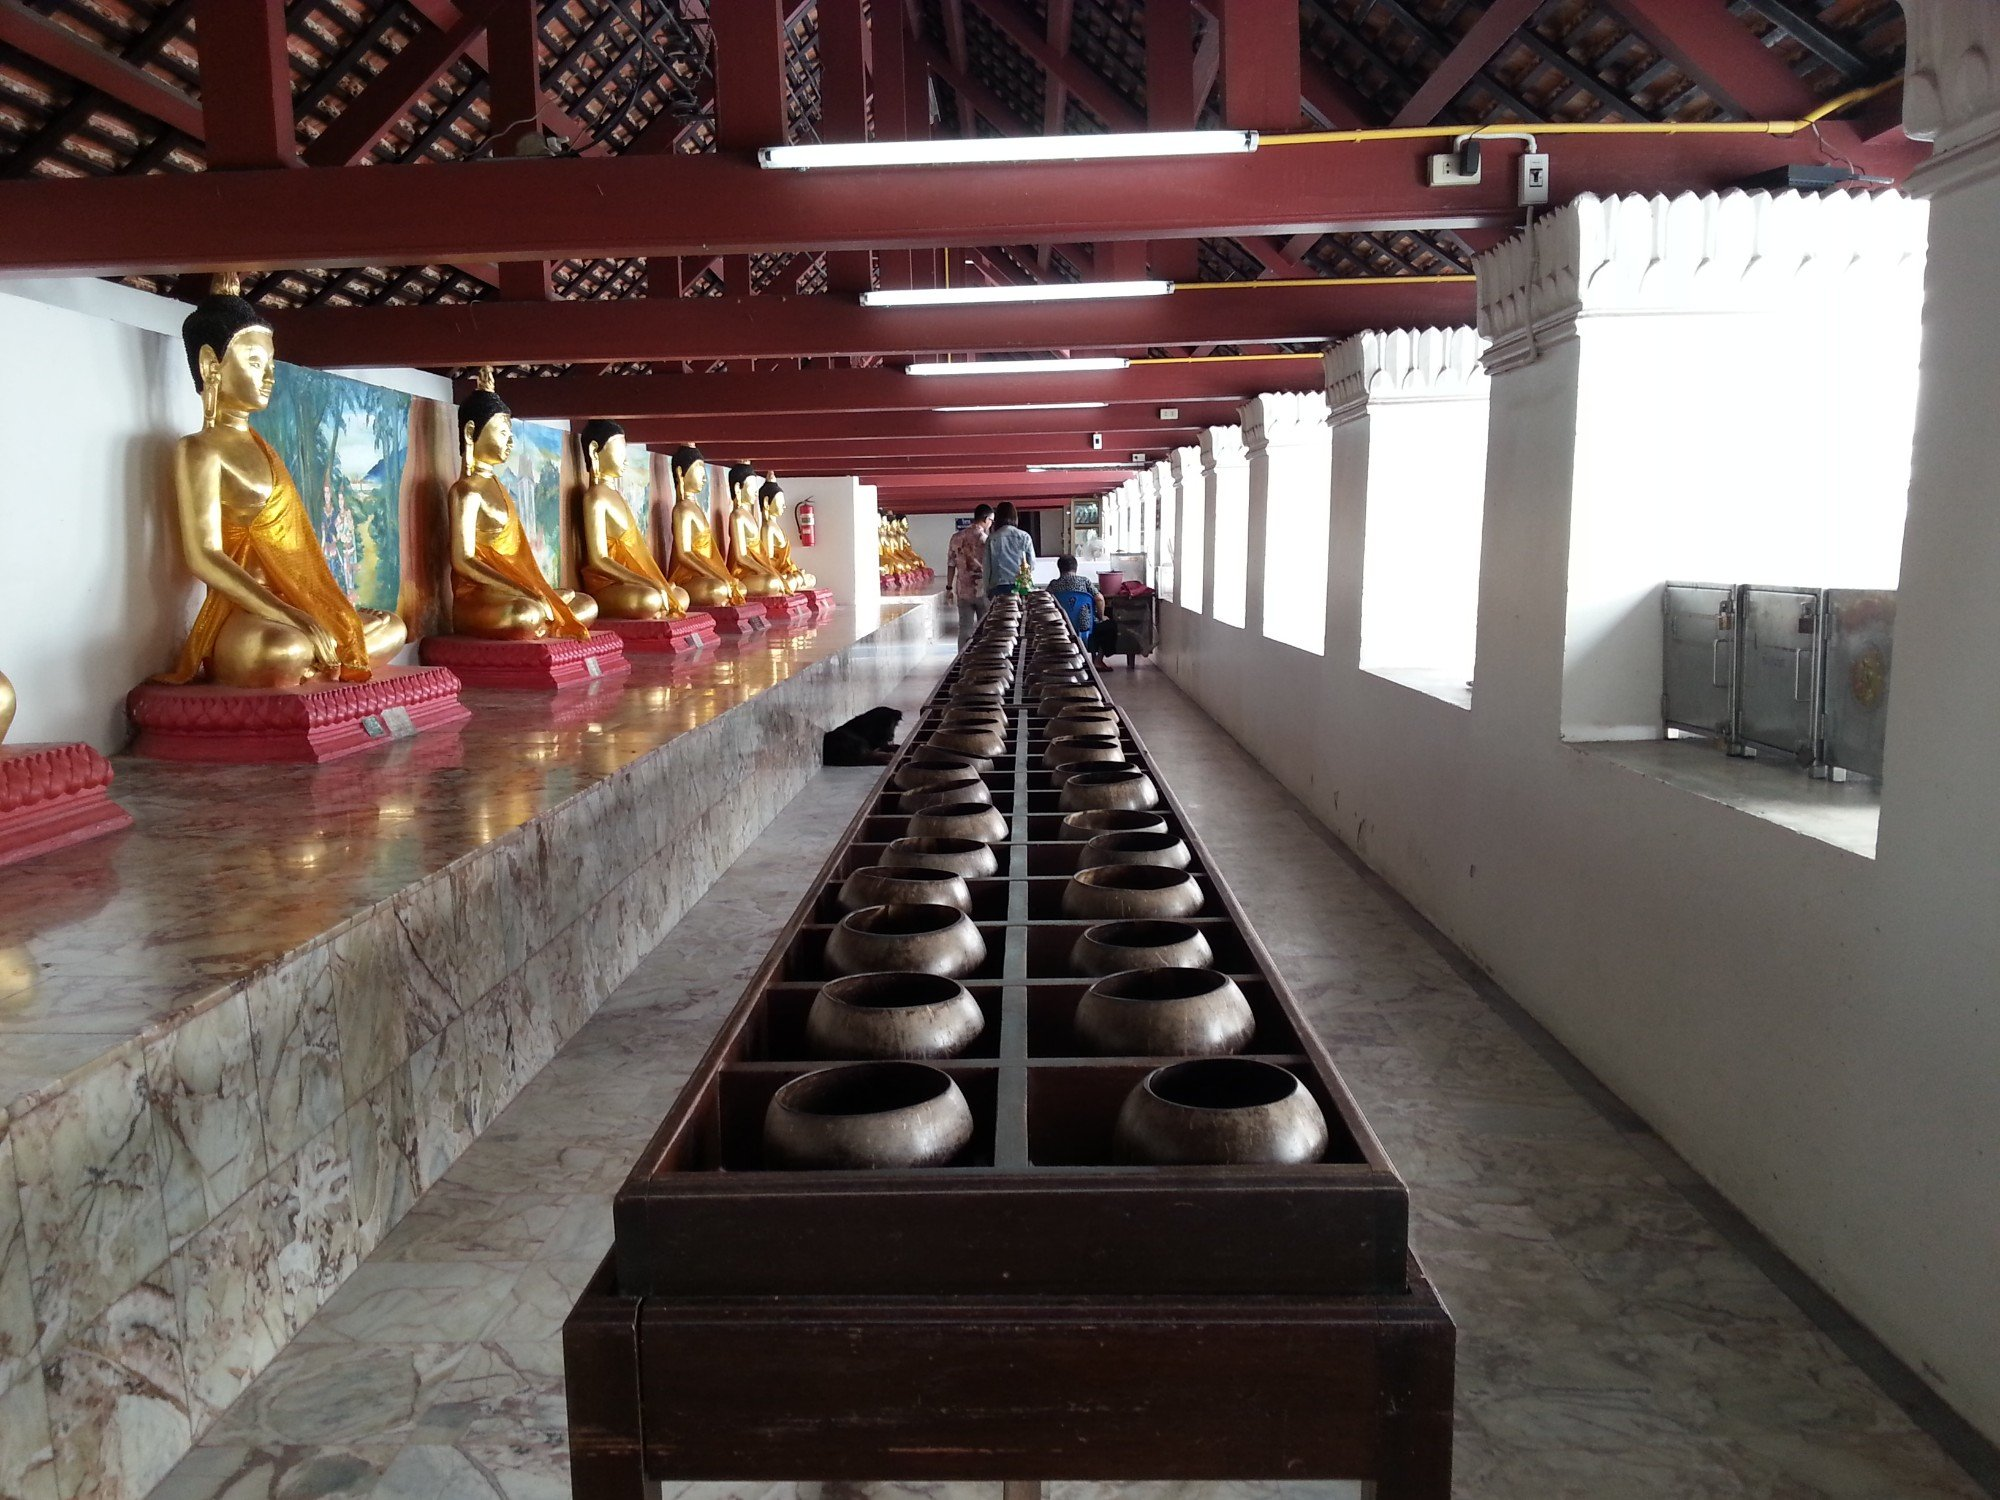 108 coin jars at Wat Phra Mahathat